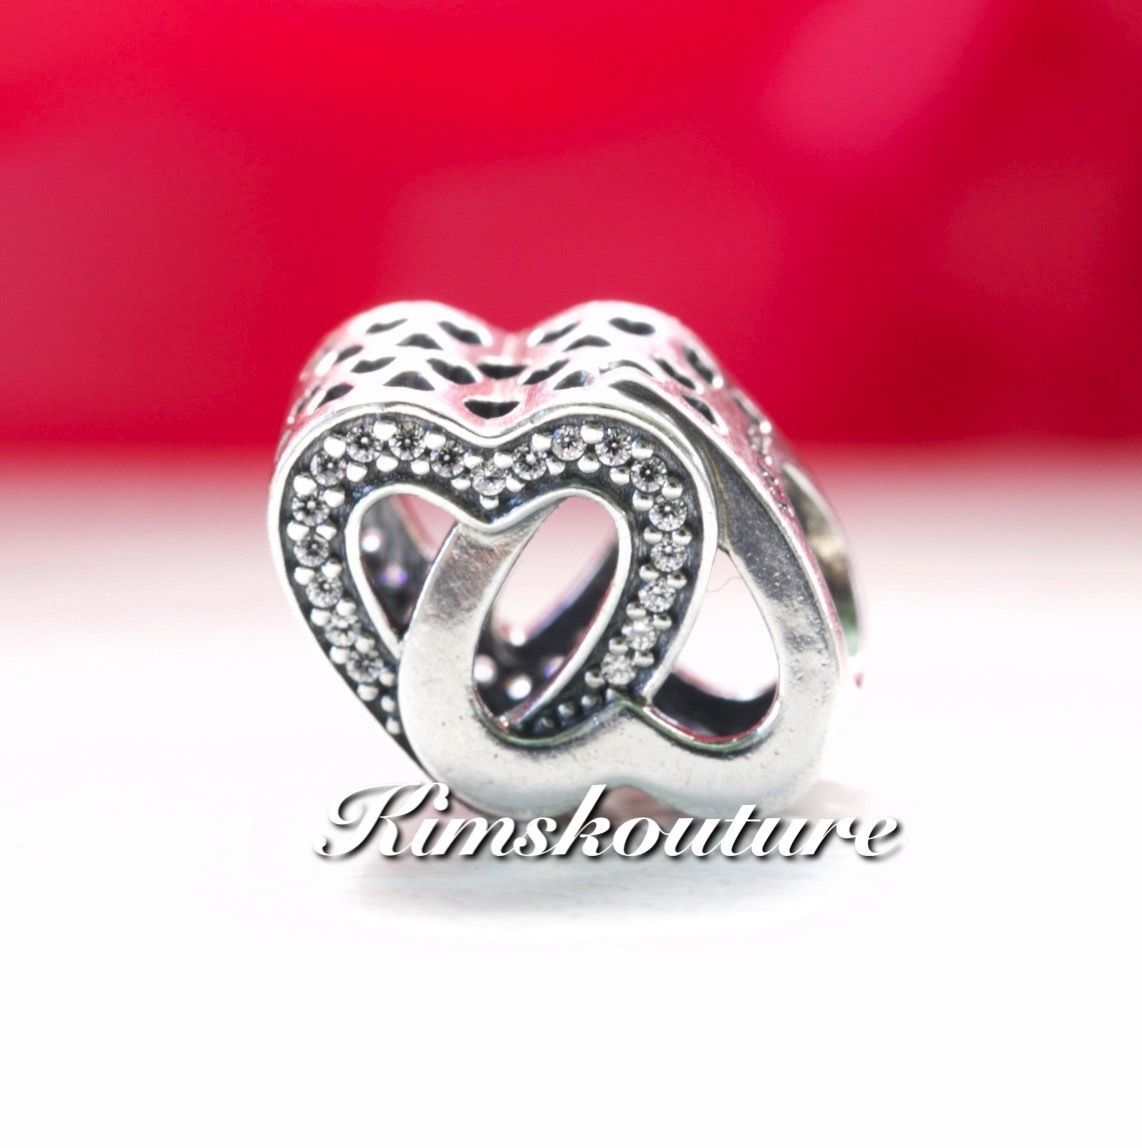 7d72aad7b Details about Authentic Pandora Entwined Love Charm 791880CZ ...